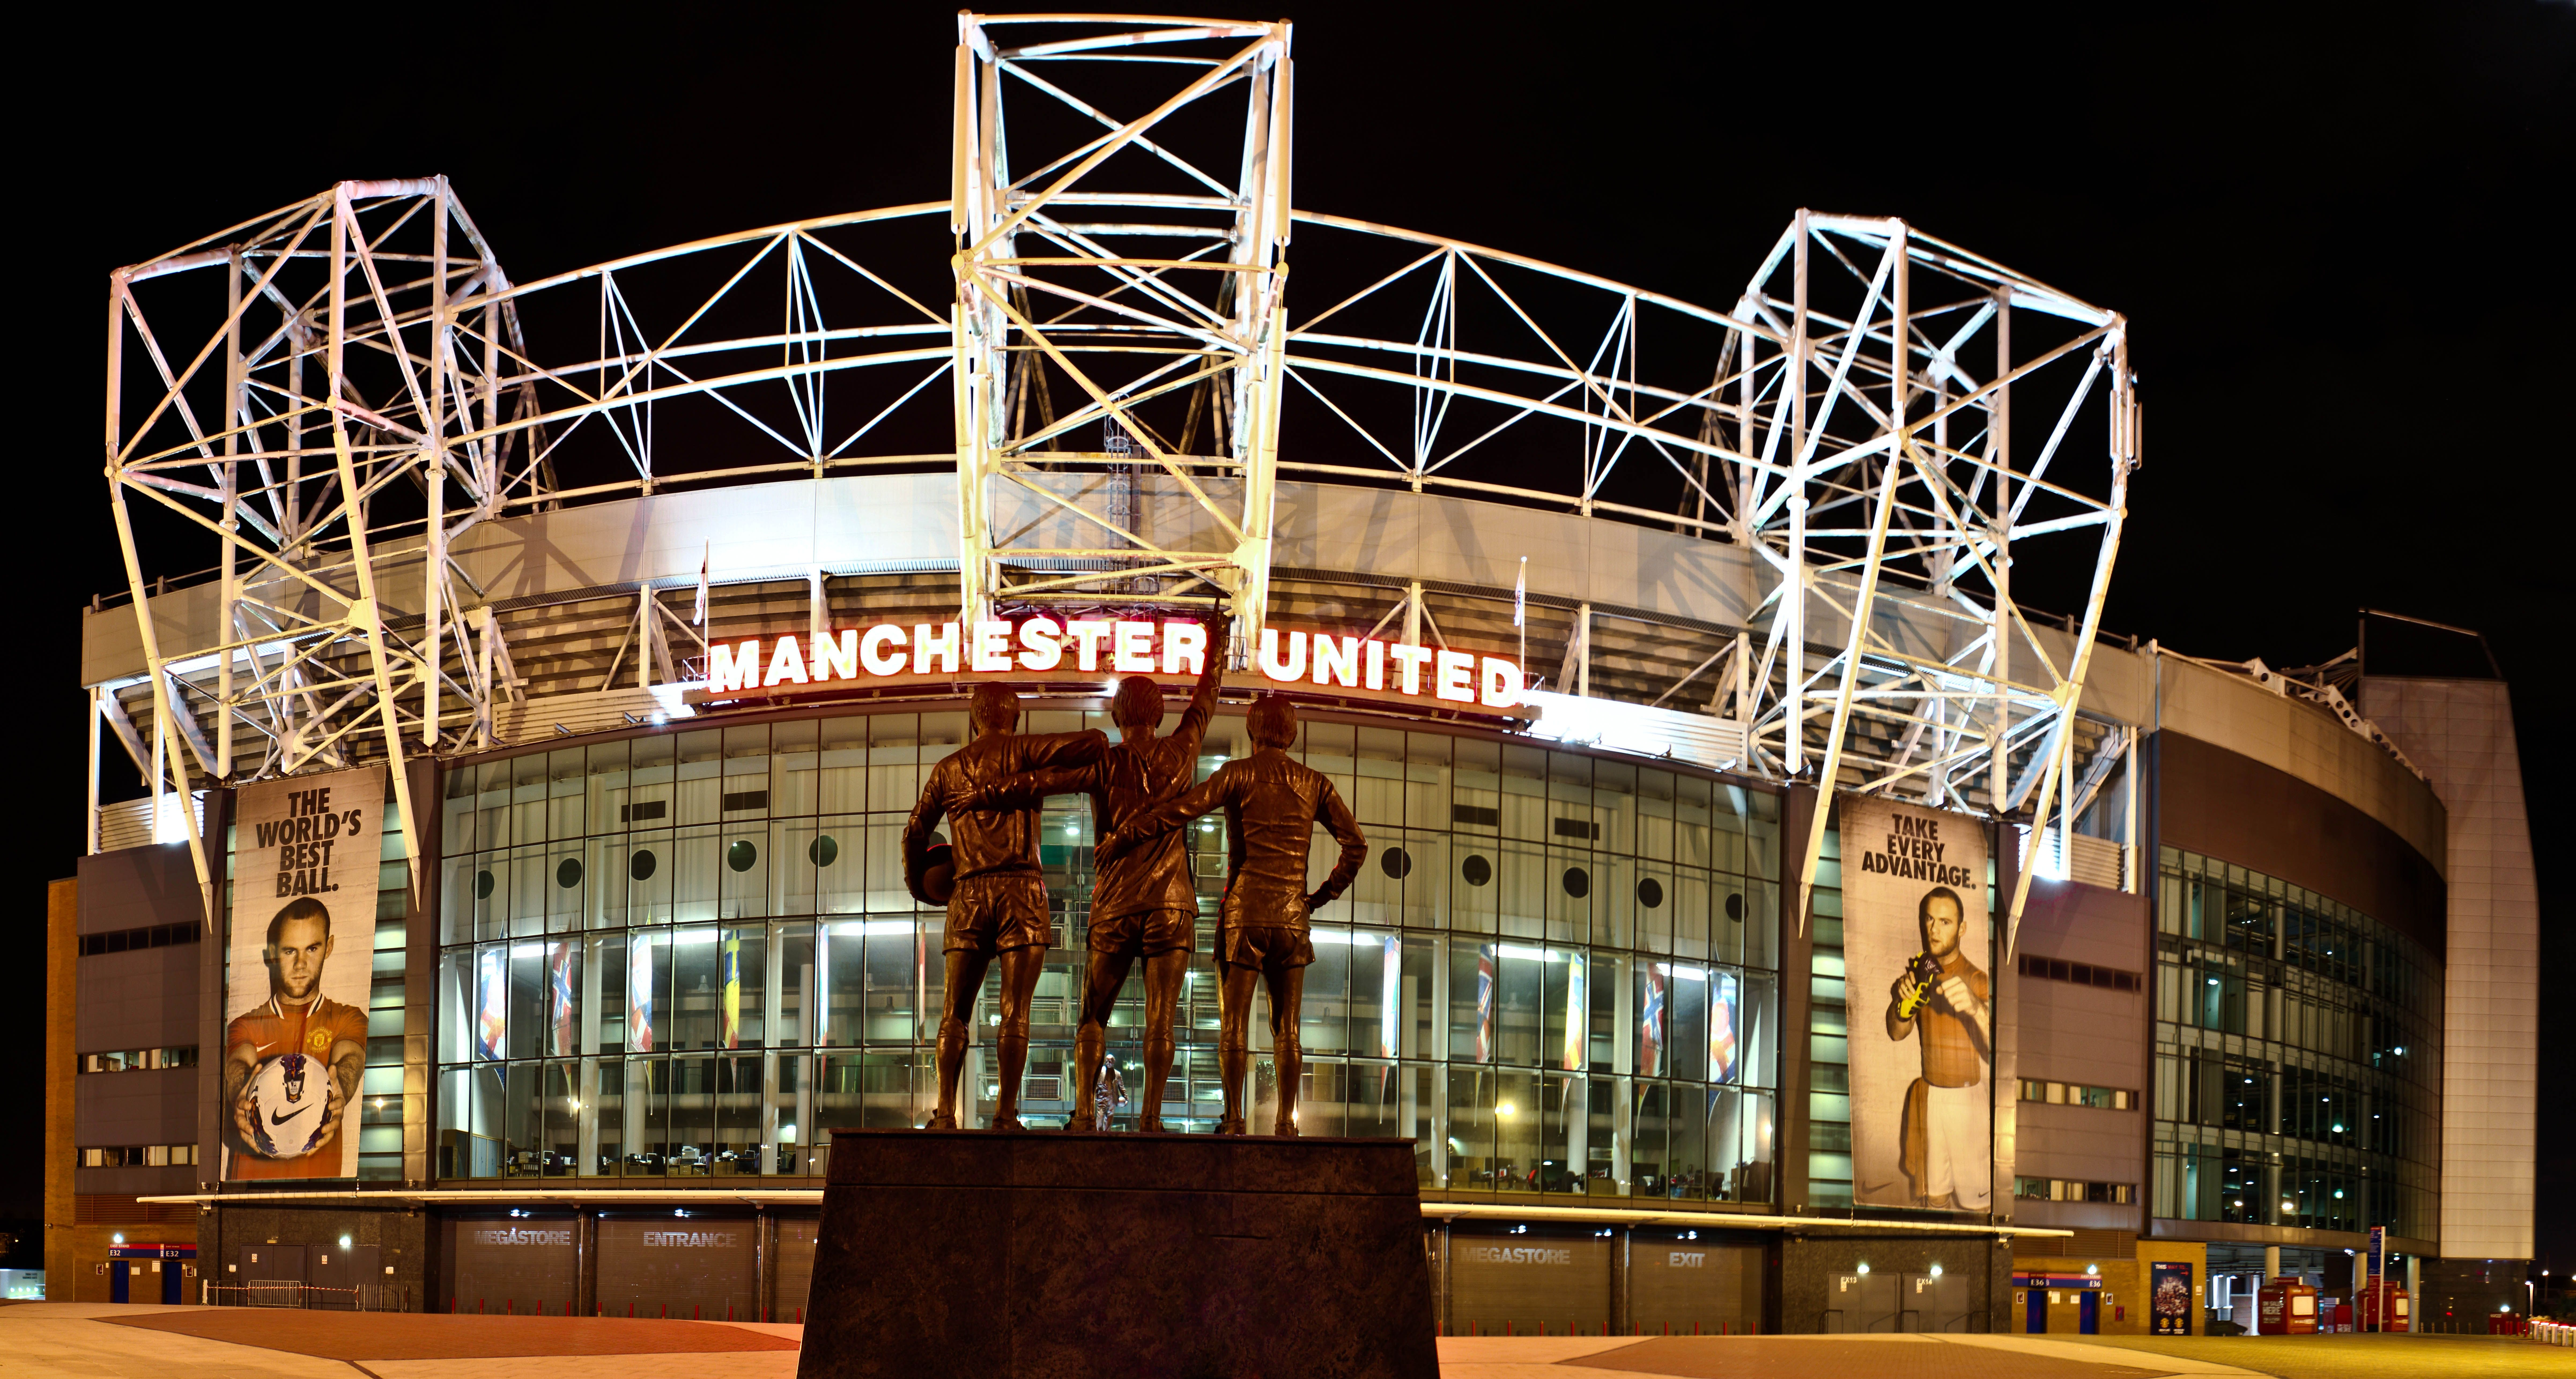 Old Trafford Manchester United S Stadium Is Nicknamed The Theatre Of Dreams A Tour Of Old Trafford And A Vi Old Trafford Manchester Manchester United Fans